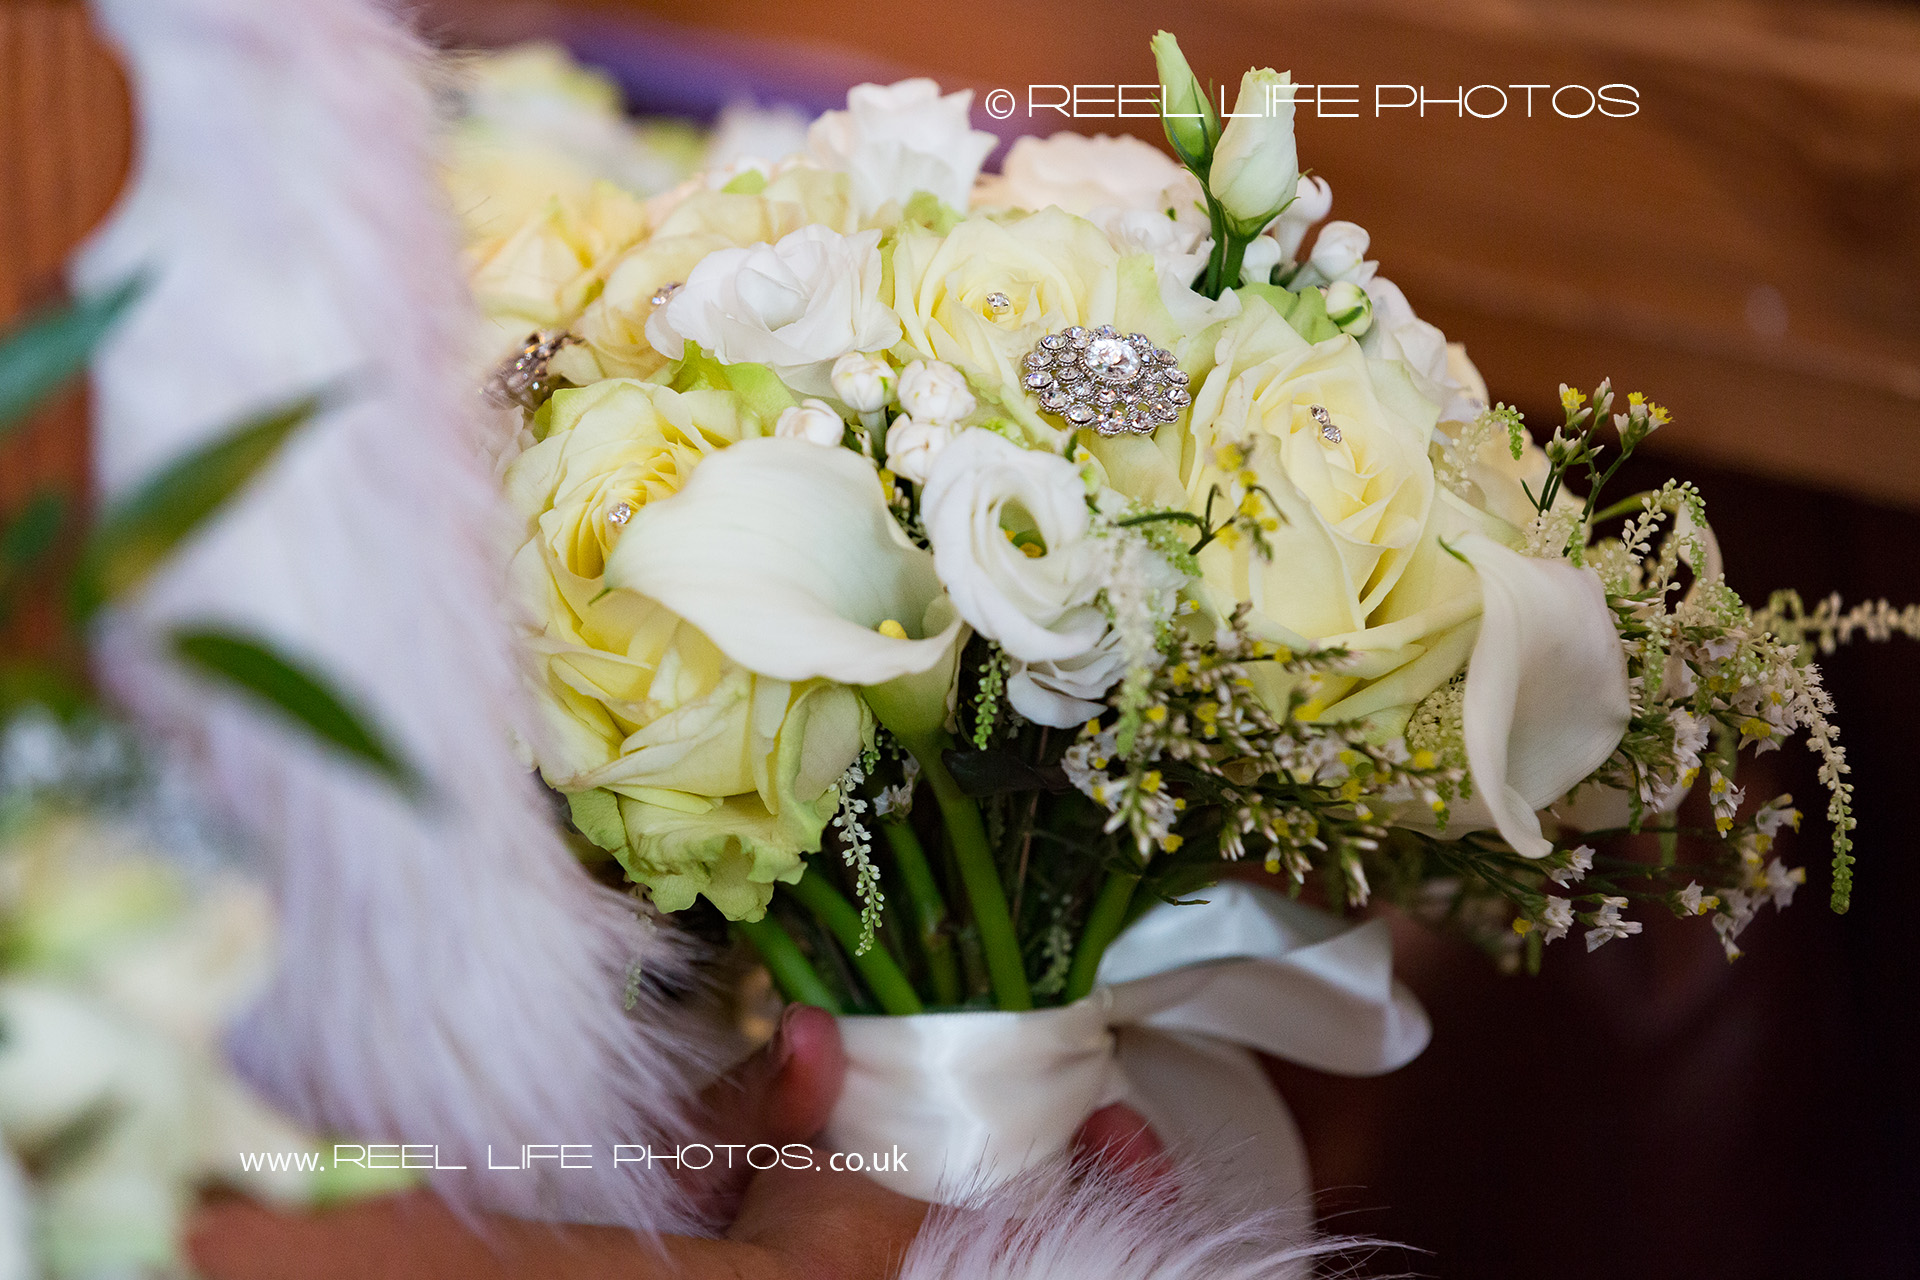 Wedding bouquet with lemon and white roises and white lillies